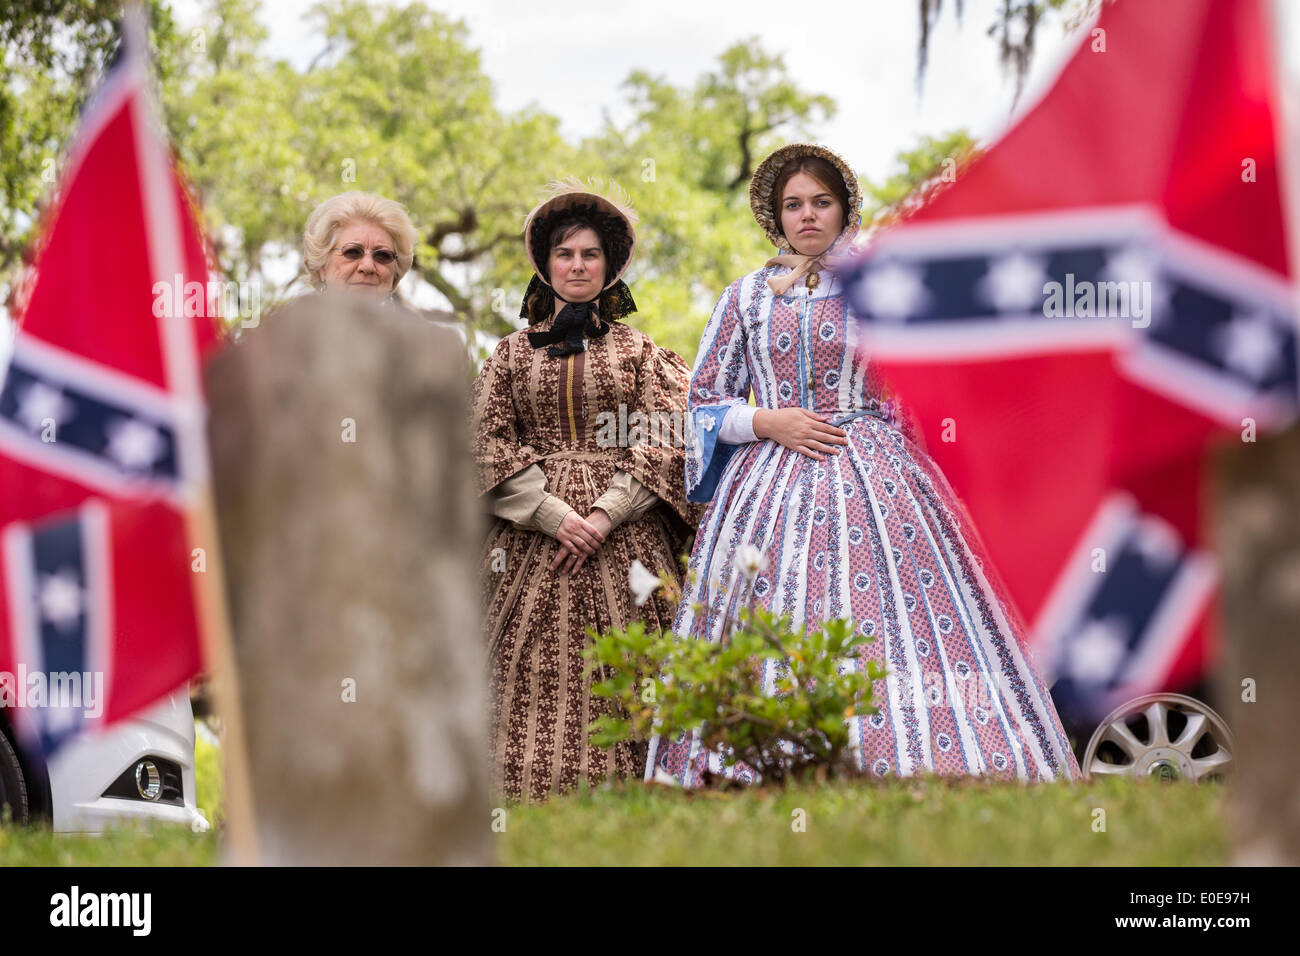 Re-enactors dressed in Civil War era hoop skirts stand at during Confederate Memorial Day events at Magnolia Cemetery April 10, 2014 in Charleston, SC. Confederate Memorial Day honors the approximately 258,000 Confederate soldiers that died in the American Civil War. - Stock Image